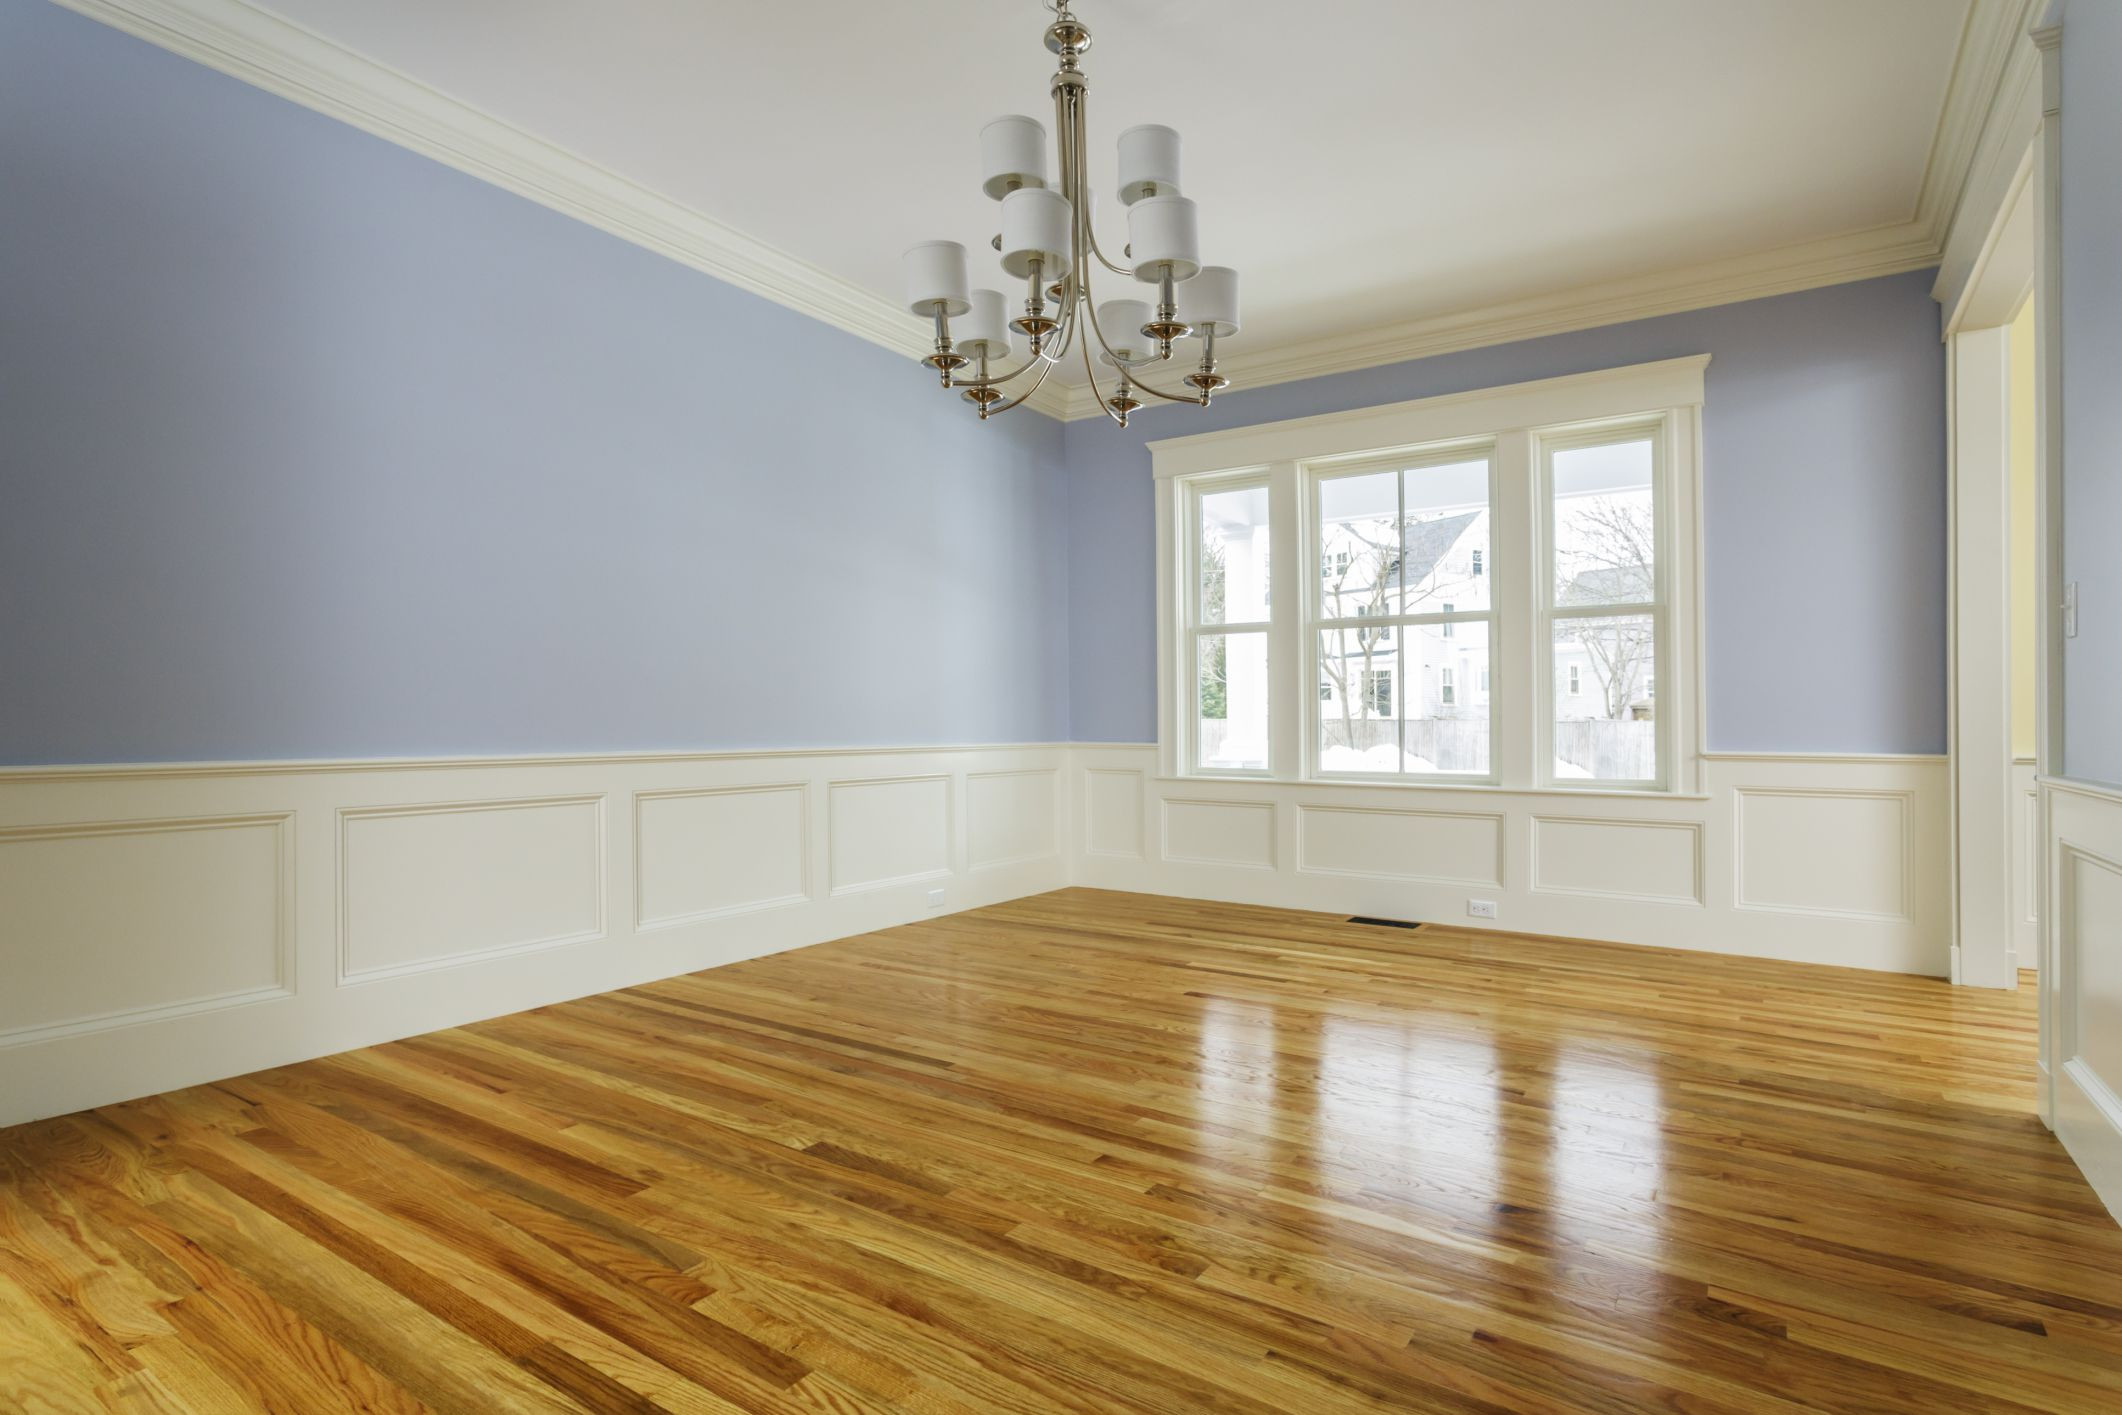 hardwood floor cleaner recipe of how to make hardwood floors shiny pertaining to 168686572 56a4e87c3df78cf7728544a2